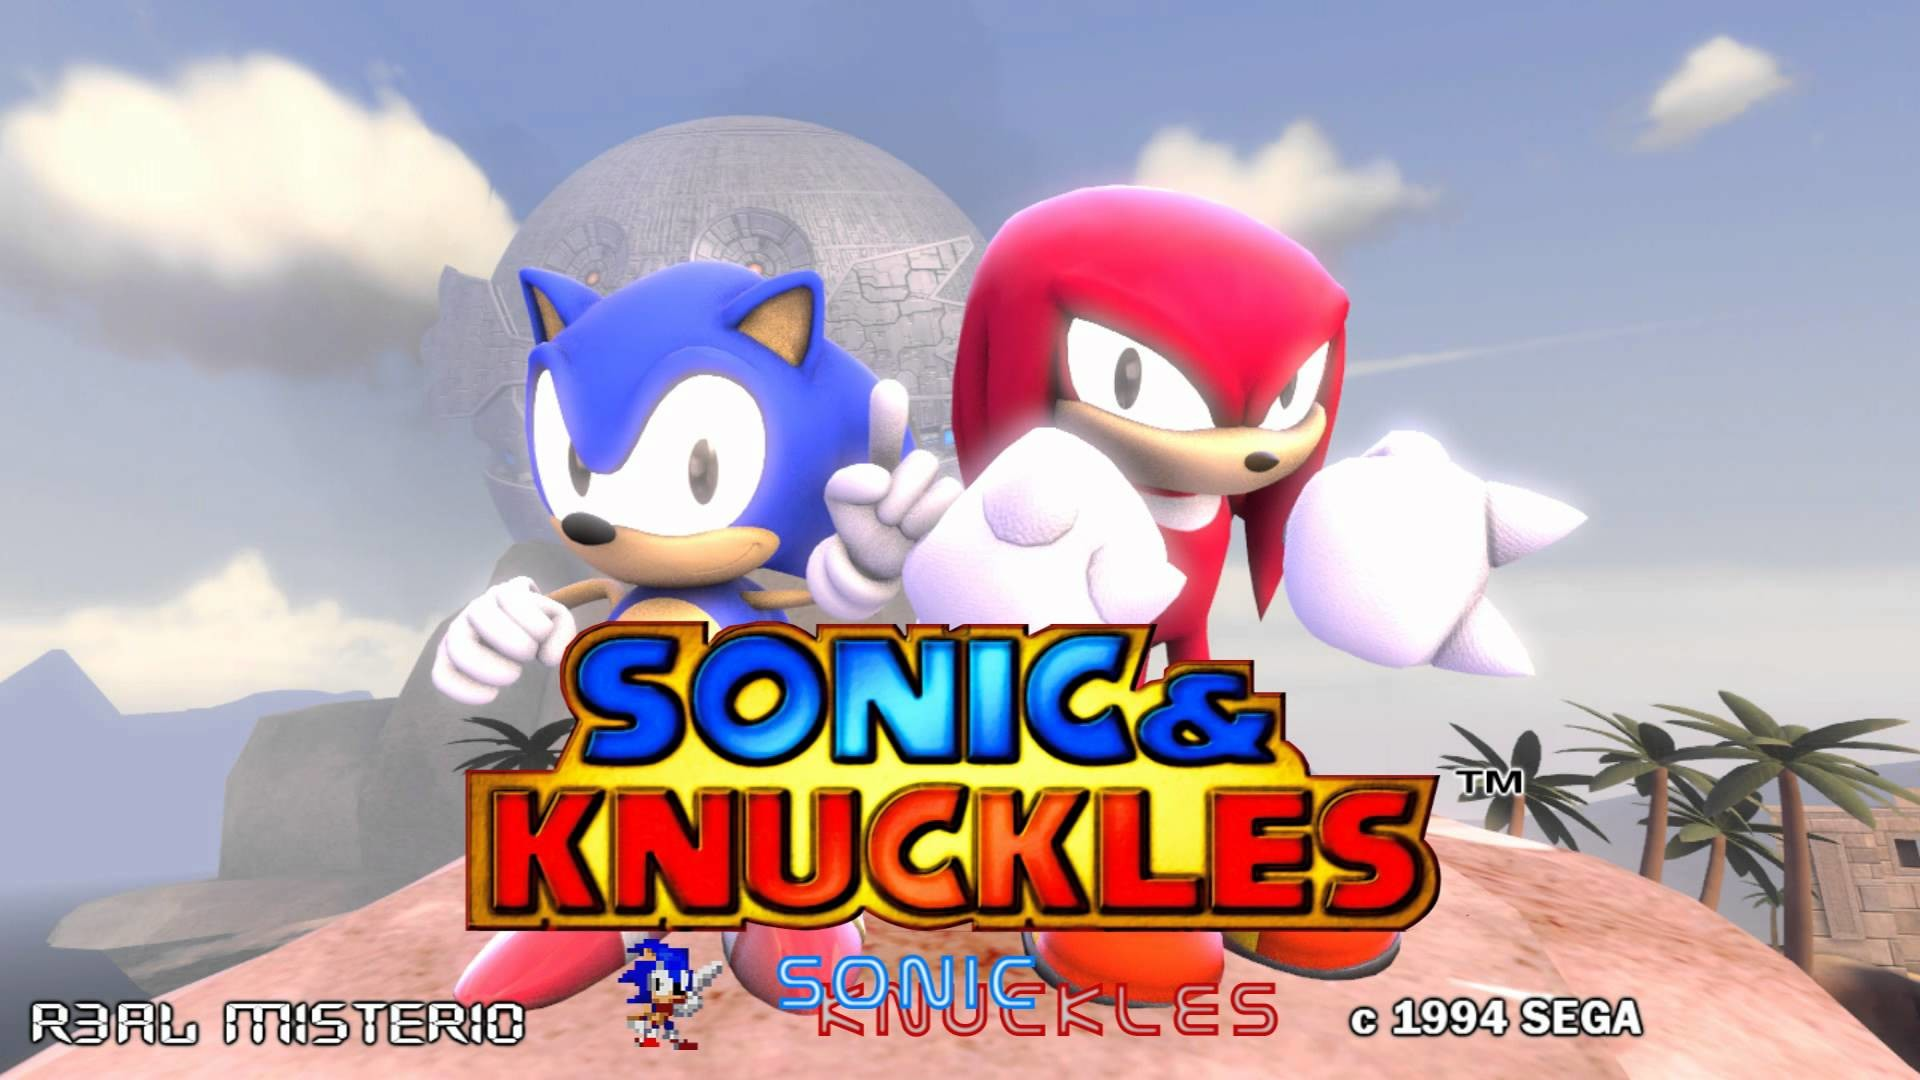 1920x1080 Sonic & Knuckles HD wallpapers #5